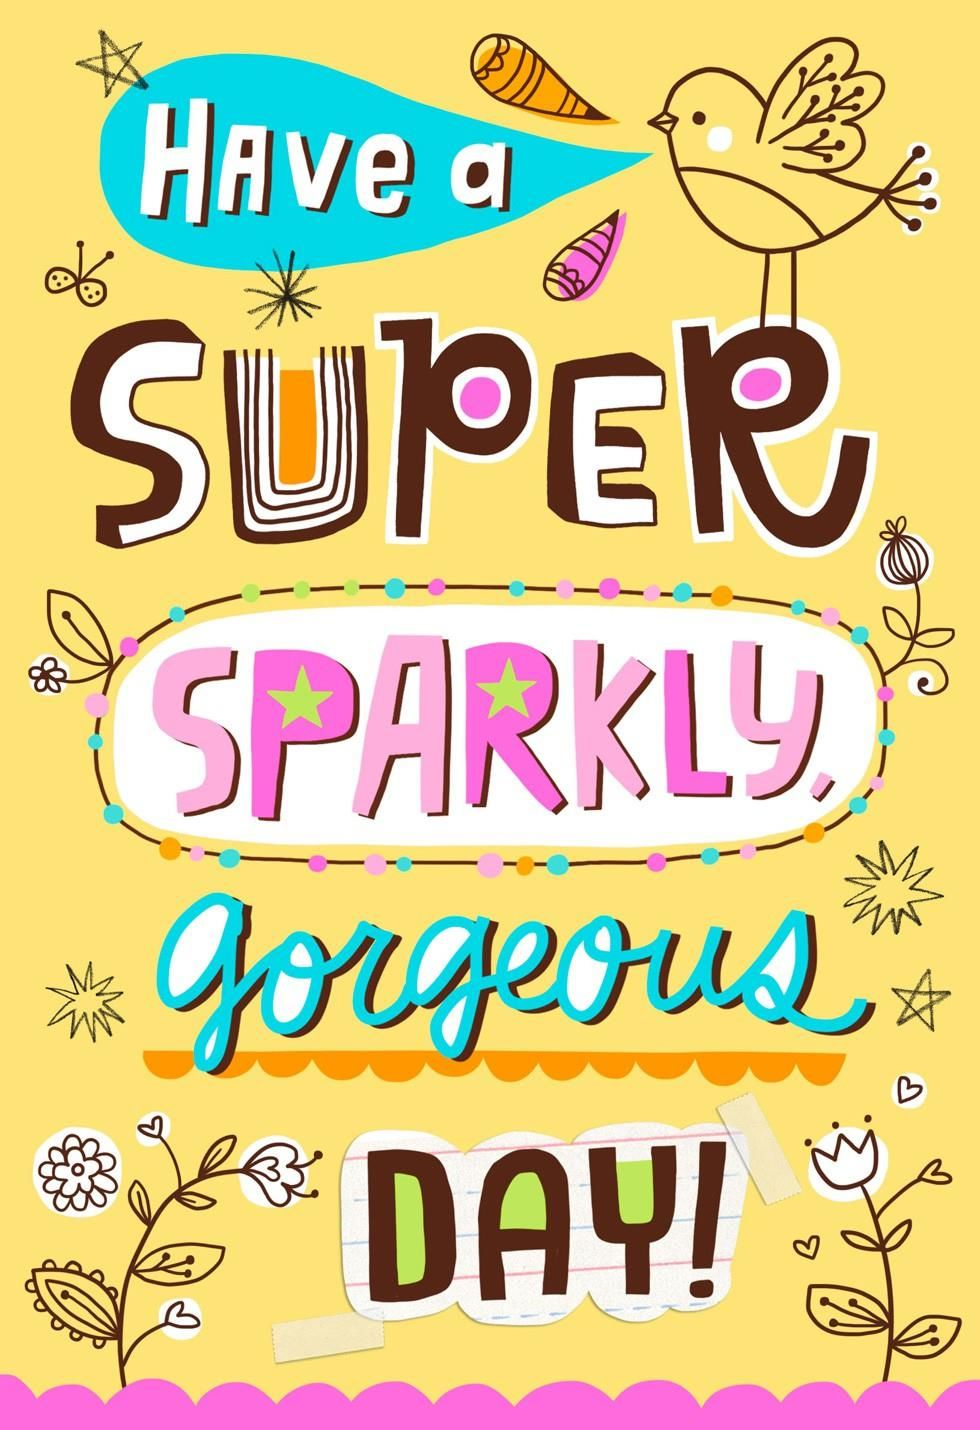 Wish a sweet, sassy, fabulous girl the super sparkly